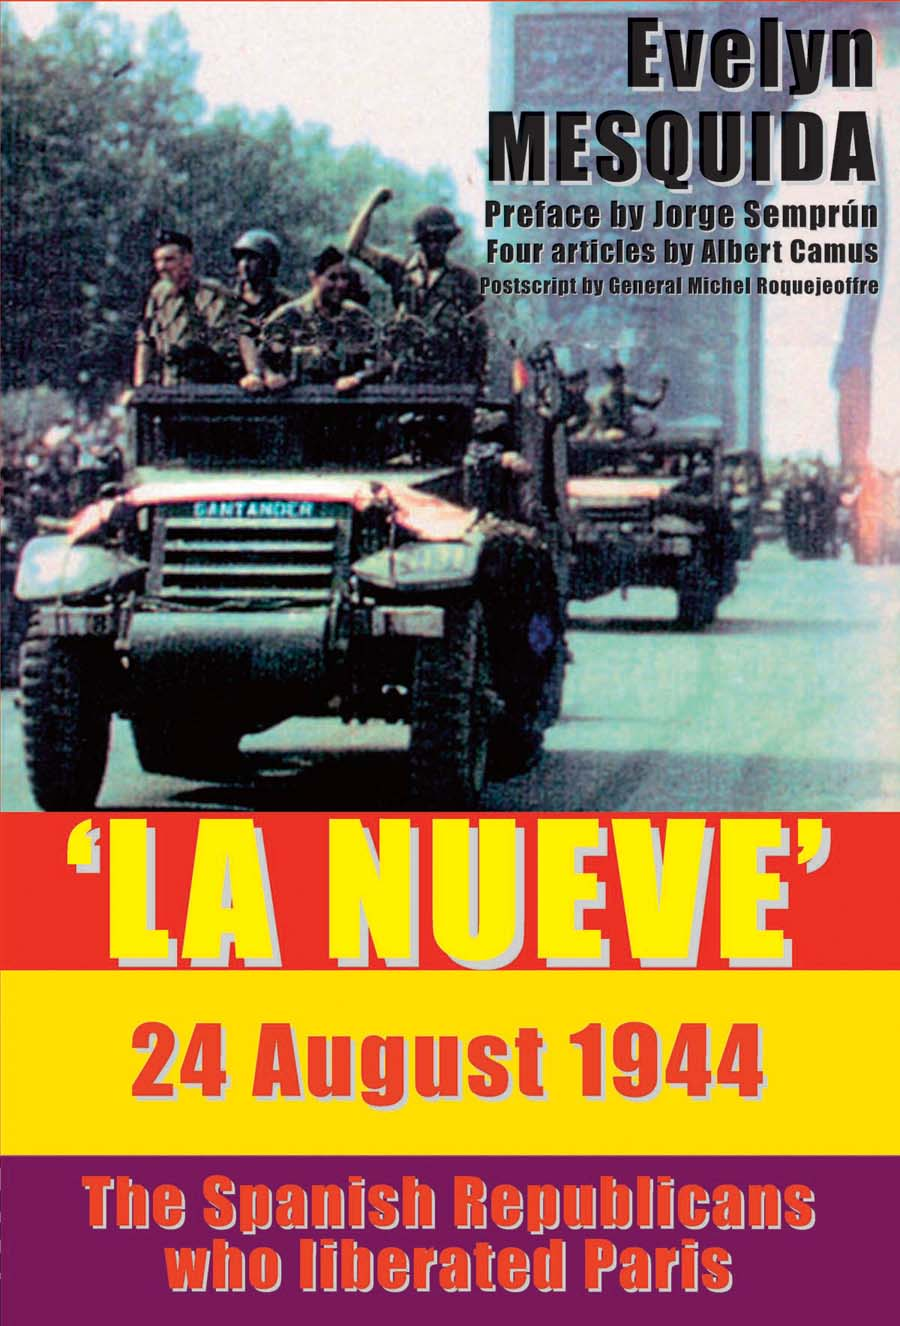 LA NUEVE 24 August, 1944 The Spaniards Who Liberated Paris